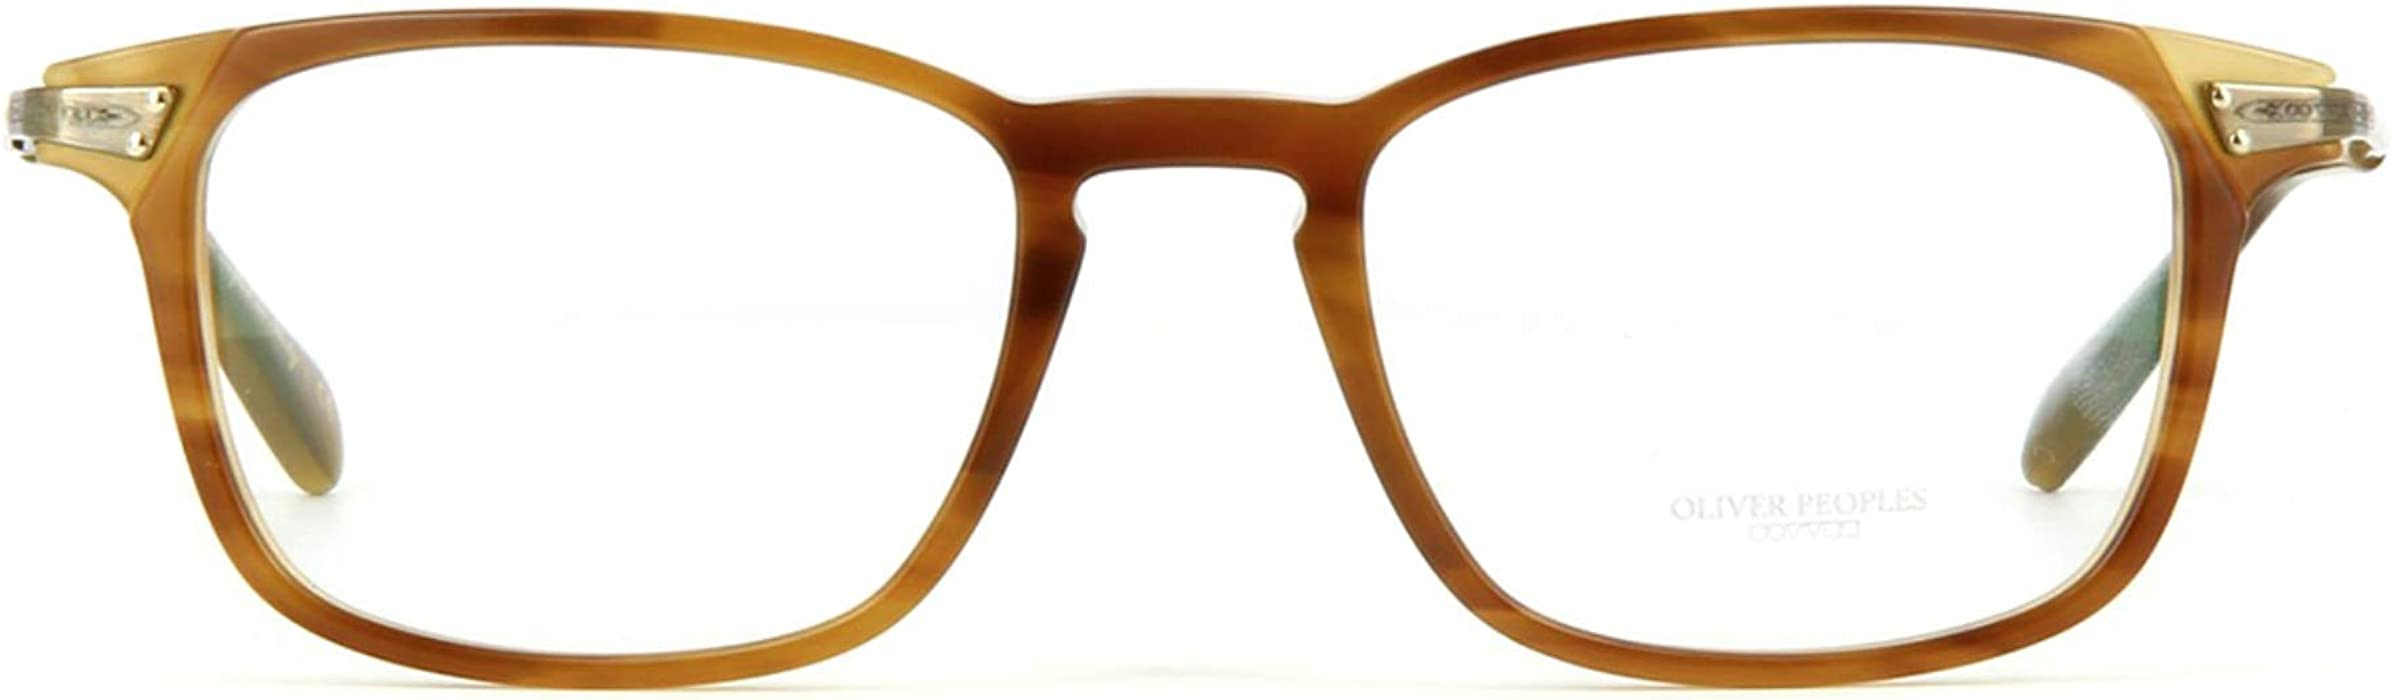 ce2f4a383b4 OV5278U Harwell Eyeglasses 1011 Raintree Antique Gold 50 mm. Oliver Peoples  ...